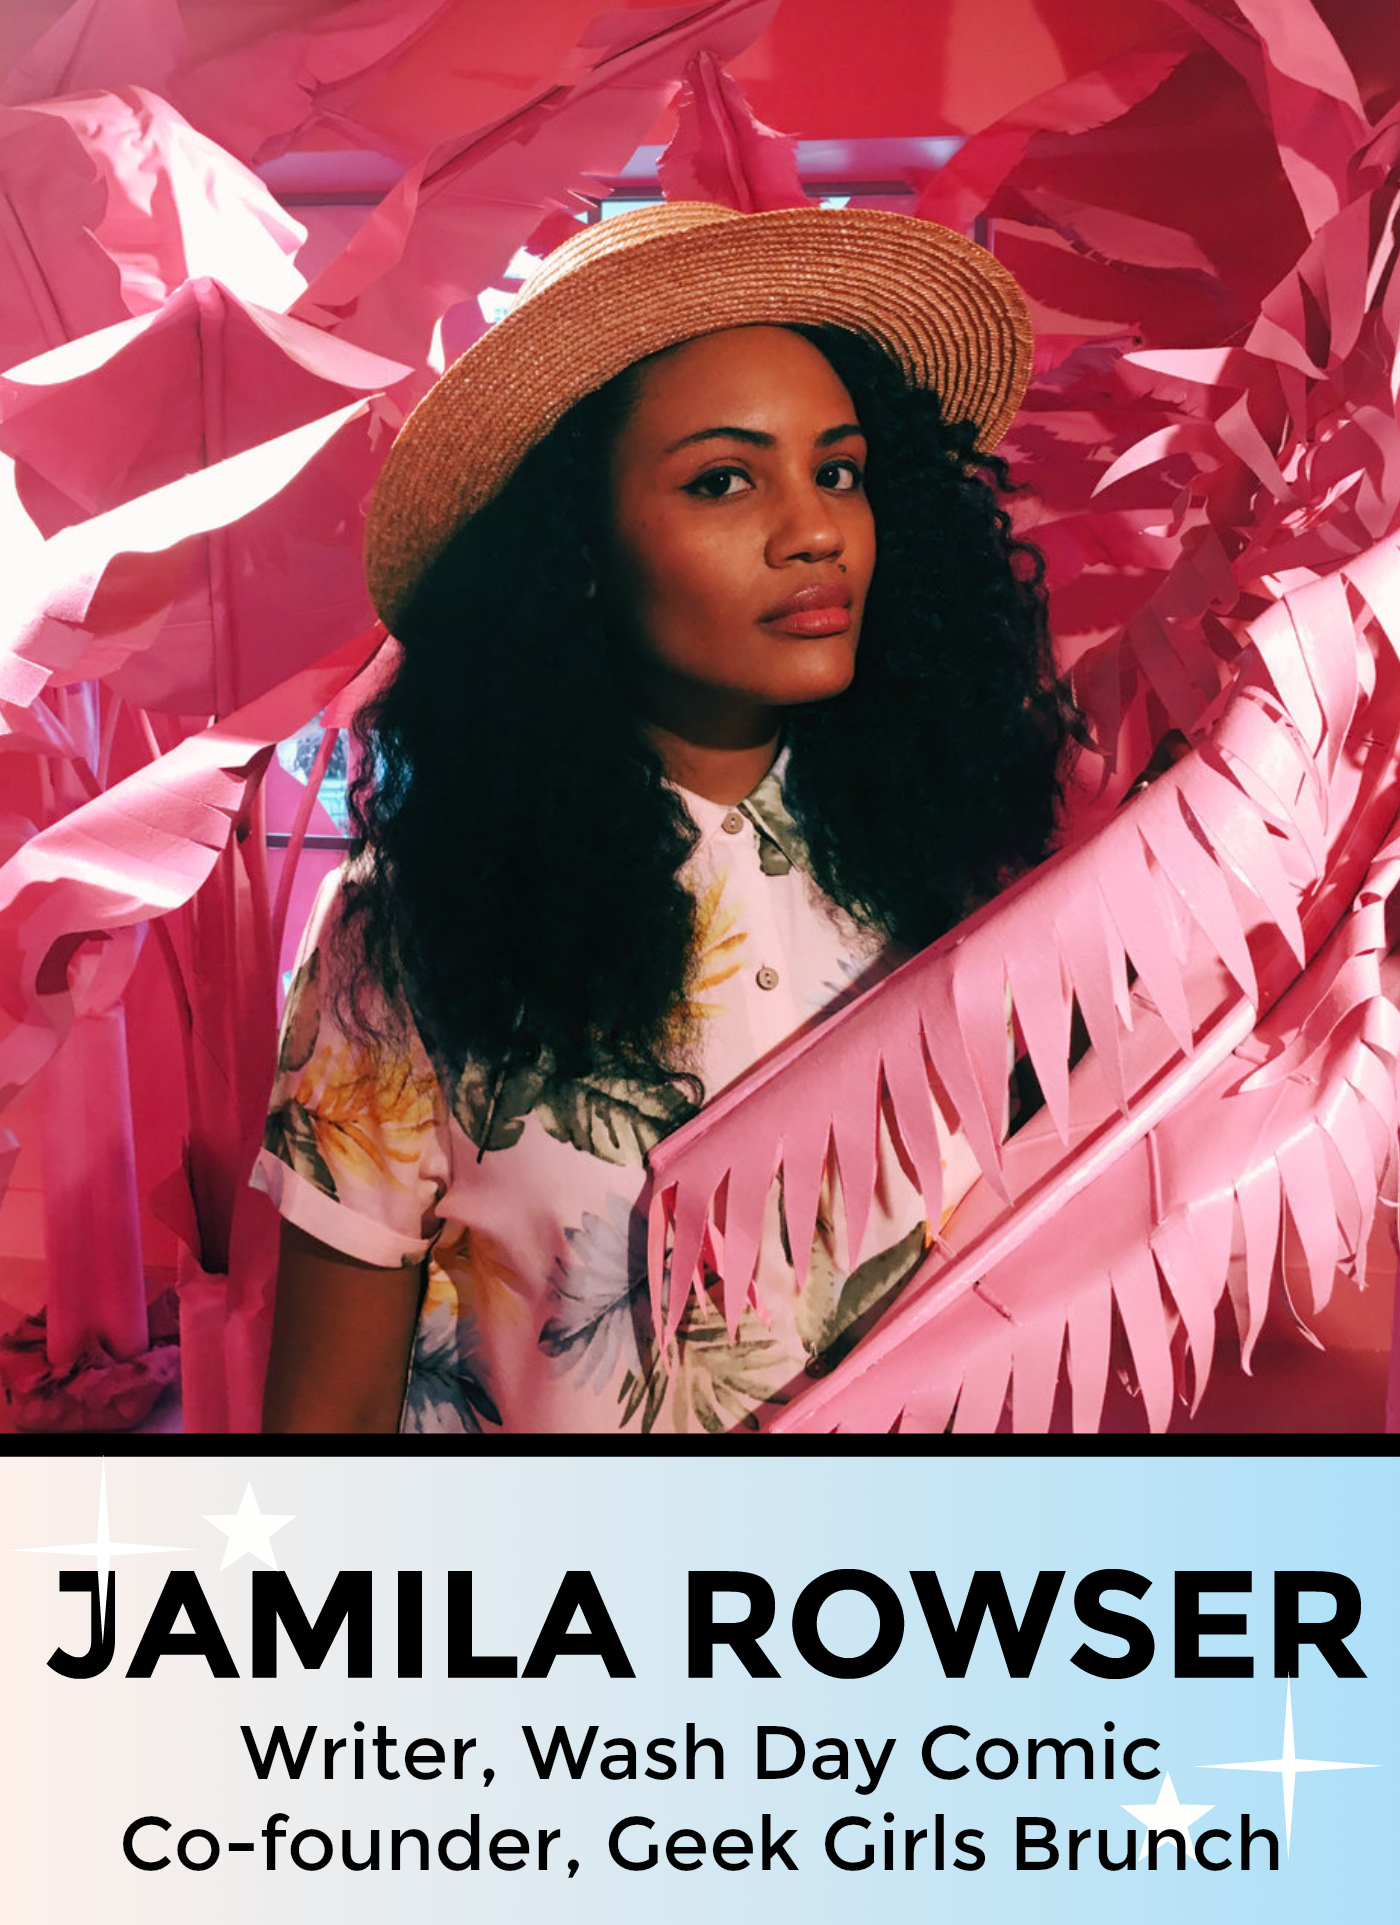 qc-jamilarowser.jpg